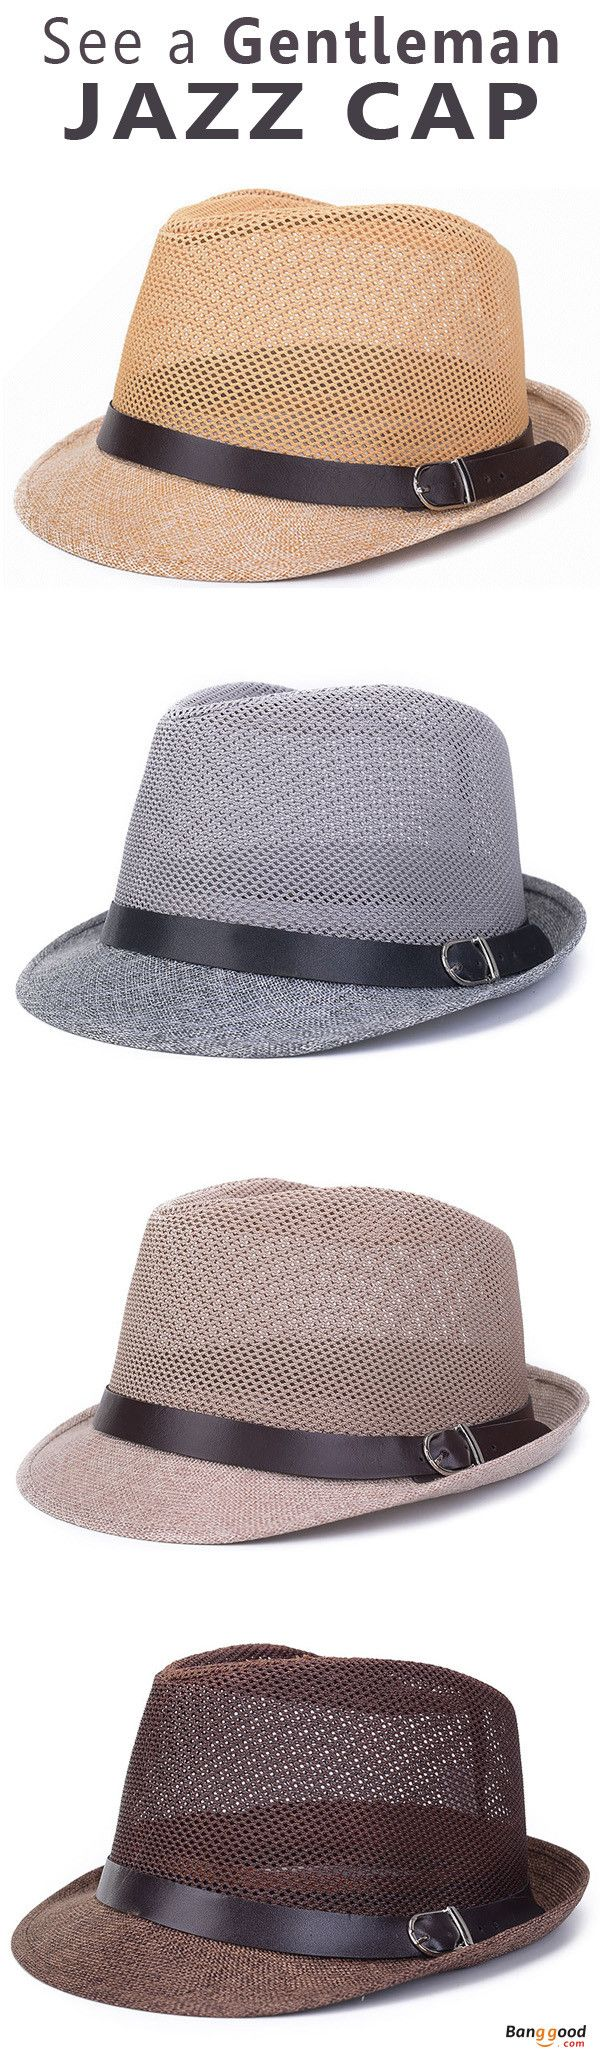 US$7.89+Free shipping. Men's Cap, Men's Fashion, Panama Hat, Beach Hat, Cabbie Hat. It is made of flax, comfortable and durable.Featuring pinched crown and curved brim,decoration with belt.A great accessory and suitable for both men and women. Color: Black, Gray, Beige, Khaki, Dark Coffee, Light Coffee, White.